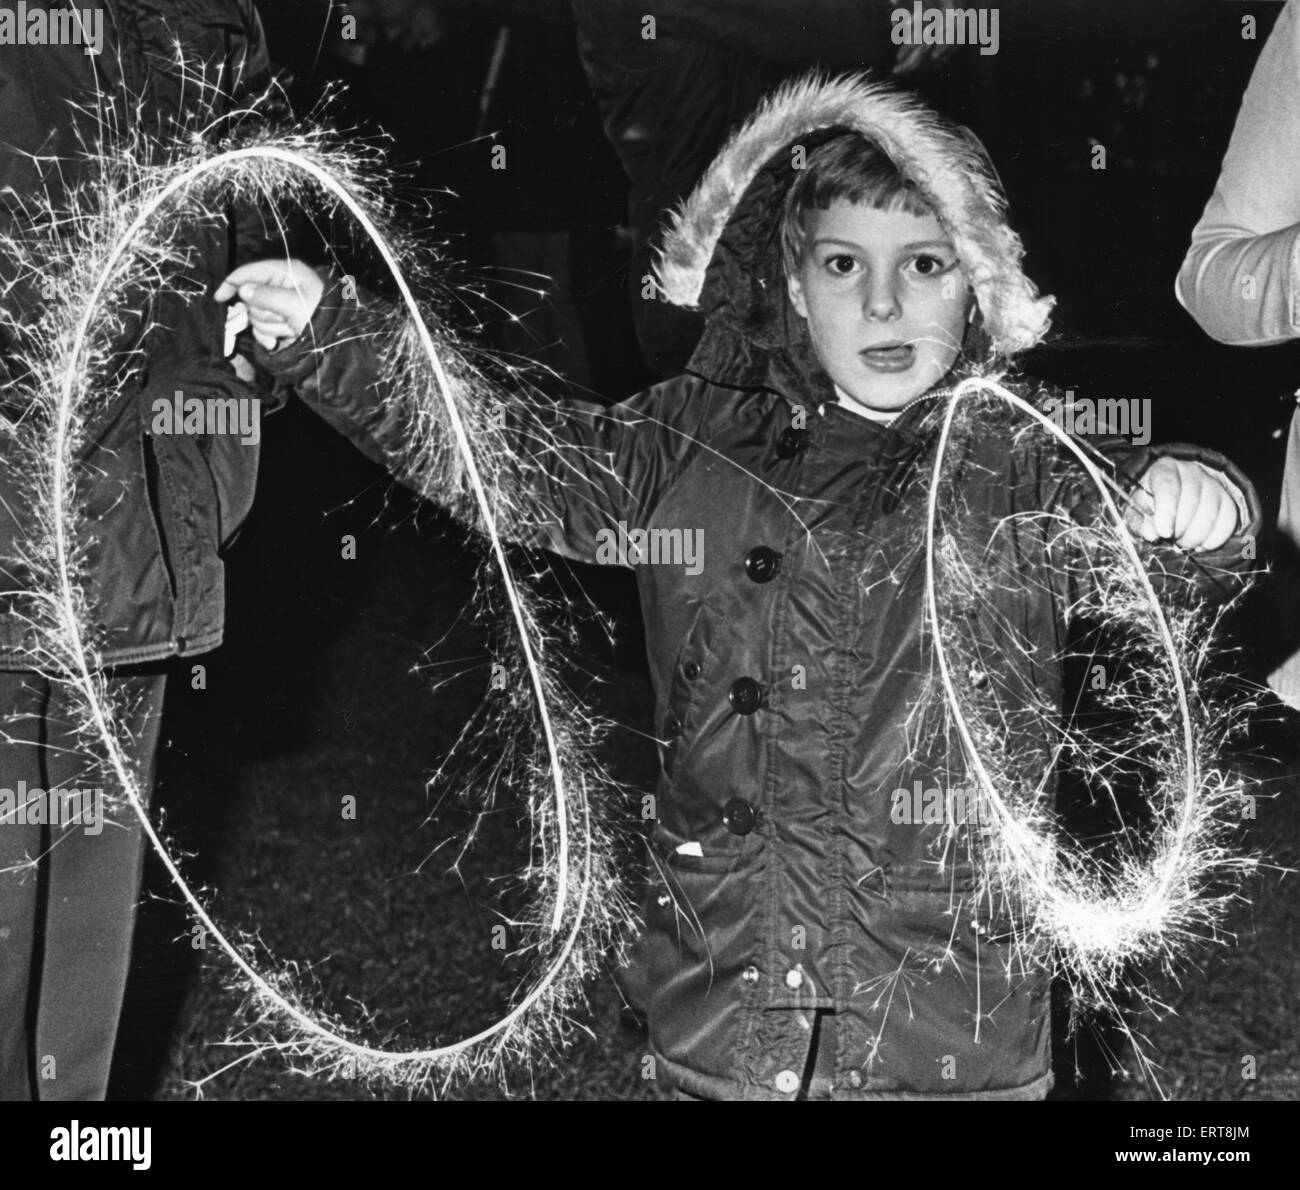 Andrew Backhouse aged 7 of Acklam seen here enjoying sparklers on bonfire night in Middlesbrough 5th November 1979 - Stock Image